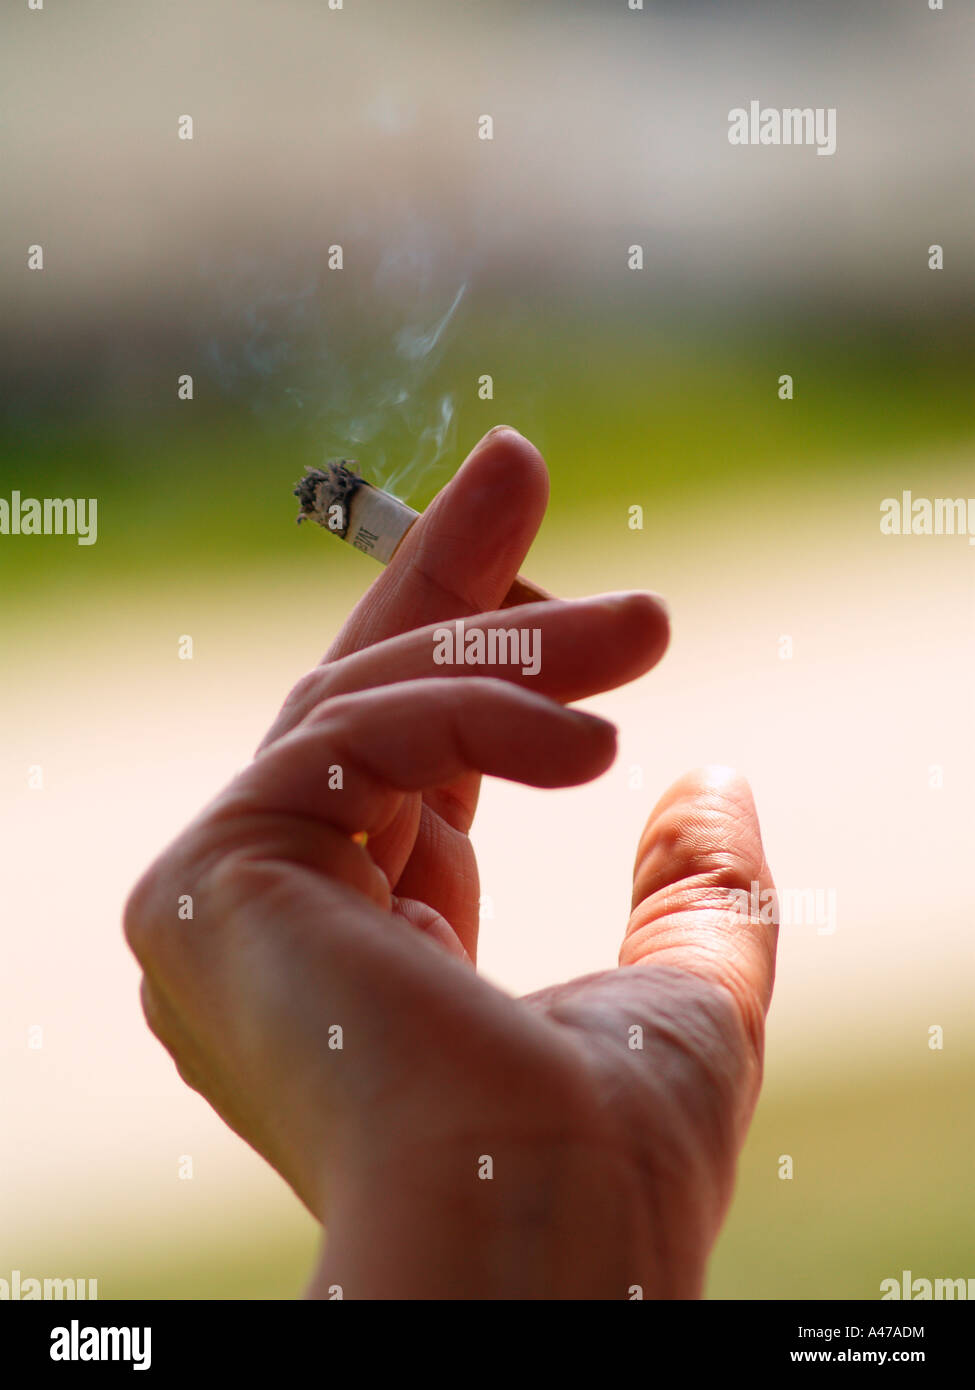 hand in motion with cigarette - Stock Image